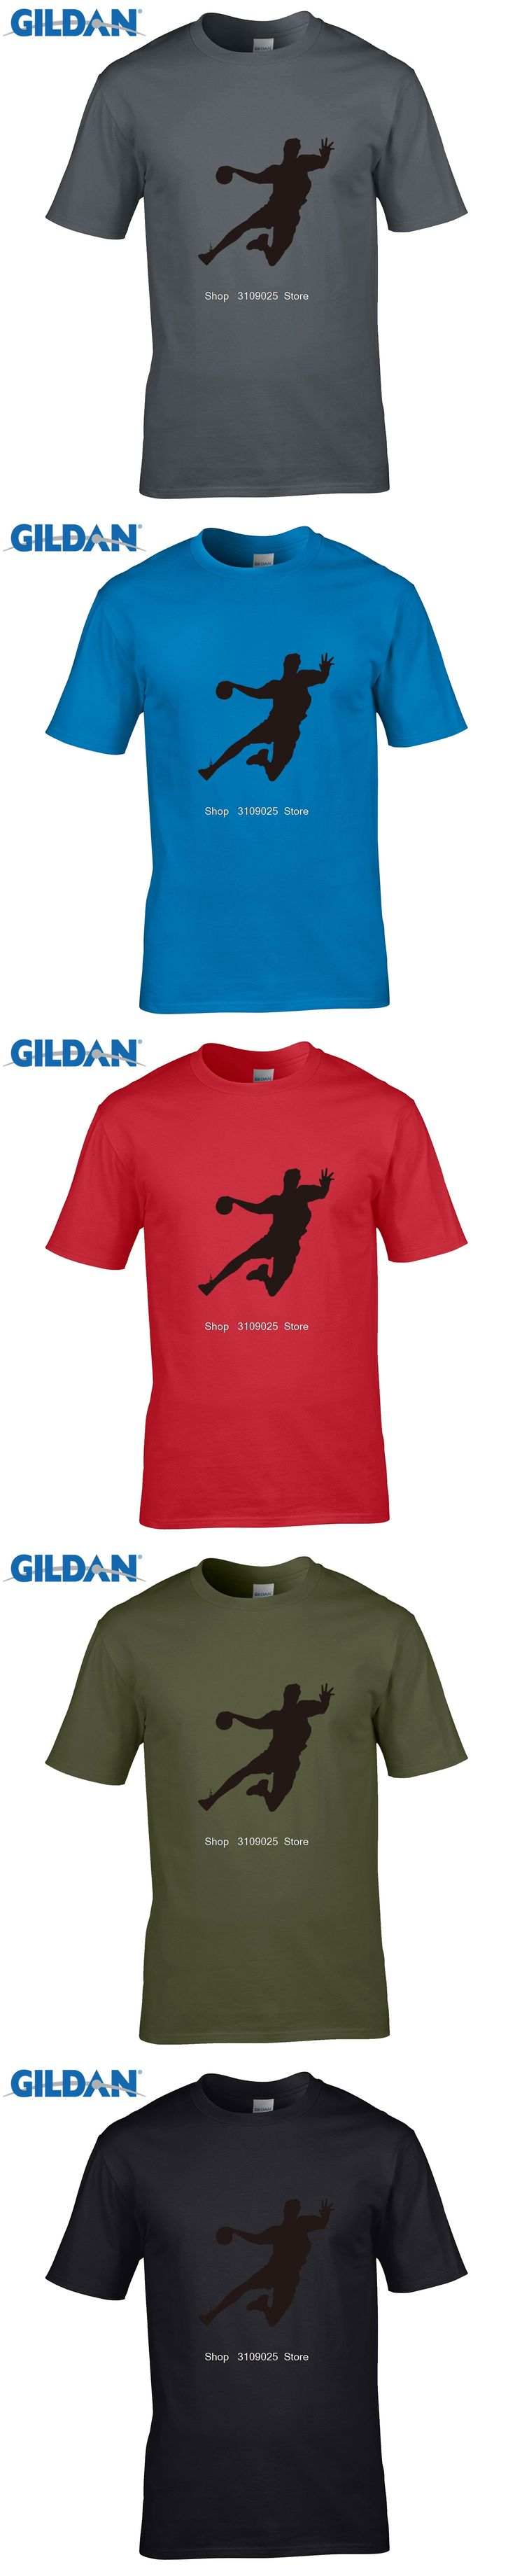 GILDAN customised t-shirts Handball Printed Mens Men T Shirt T-shirt  O Neck Cotton Casual Tshirt Tee Camisetas Masculina